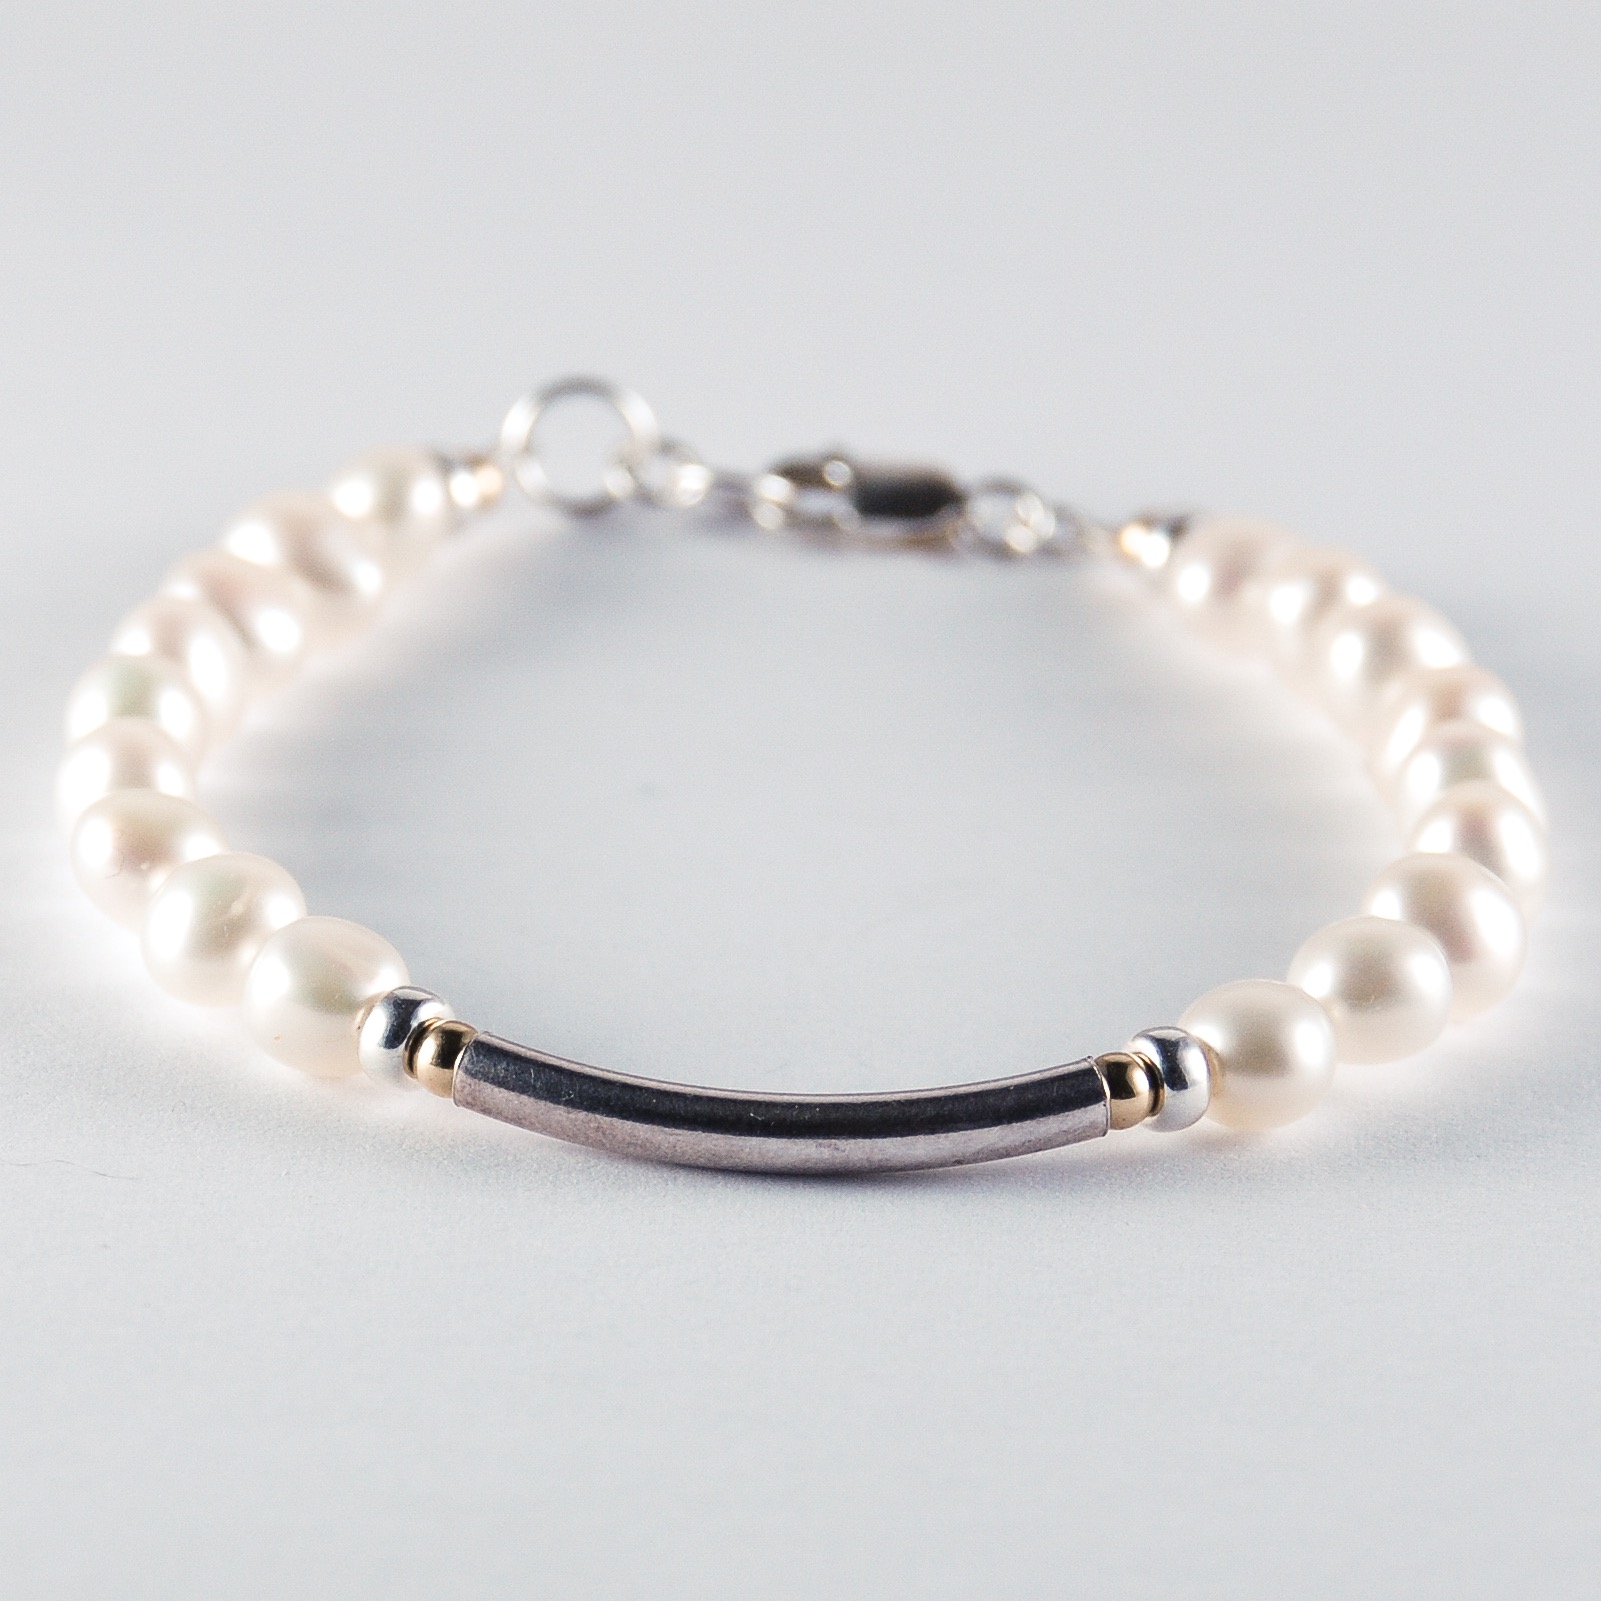 shop fresh pearls mixed water dark bracelet